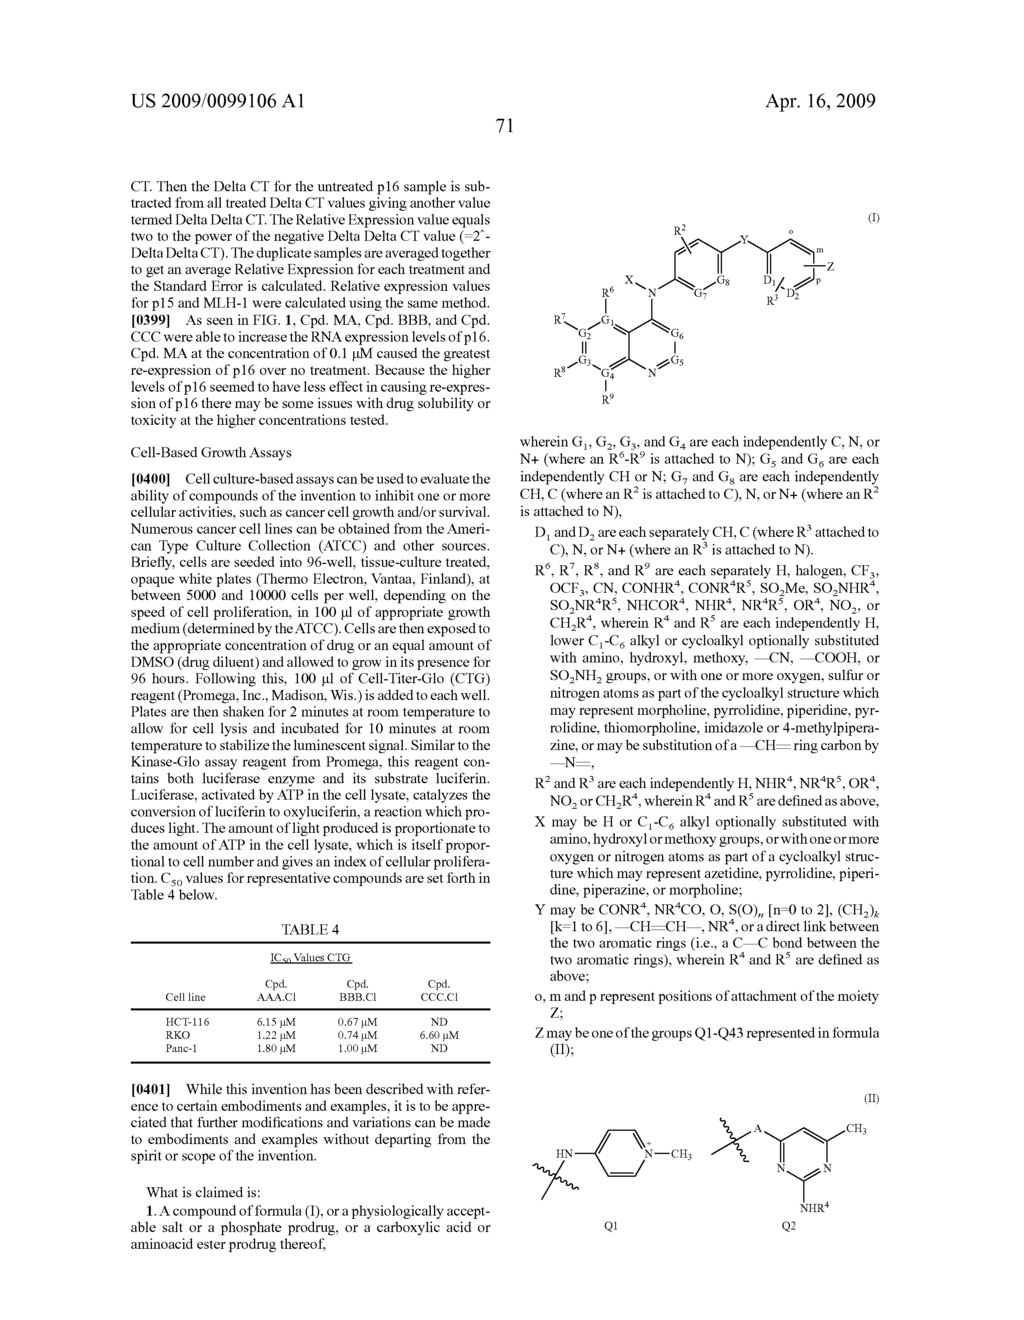 QUINOLINE DERIVATIVES FOR MODULATING DNA METHYLATION - diagram, schematic, and image 73